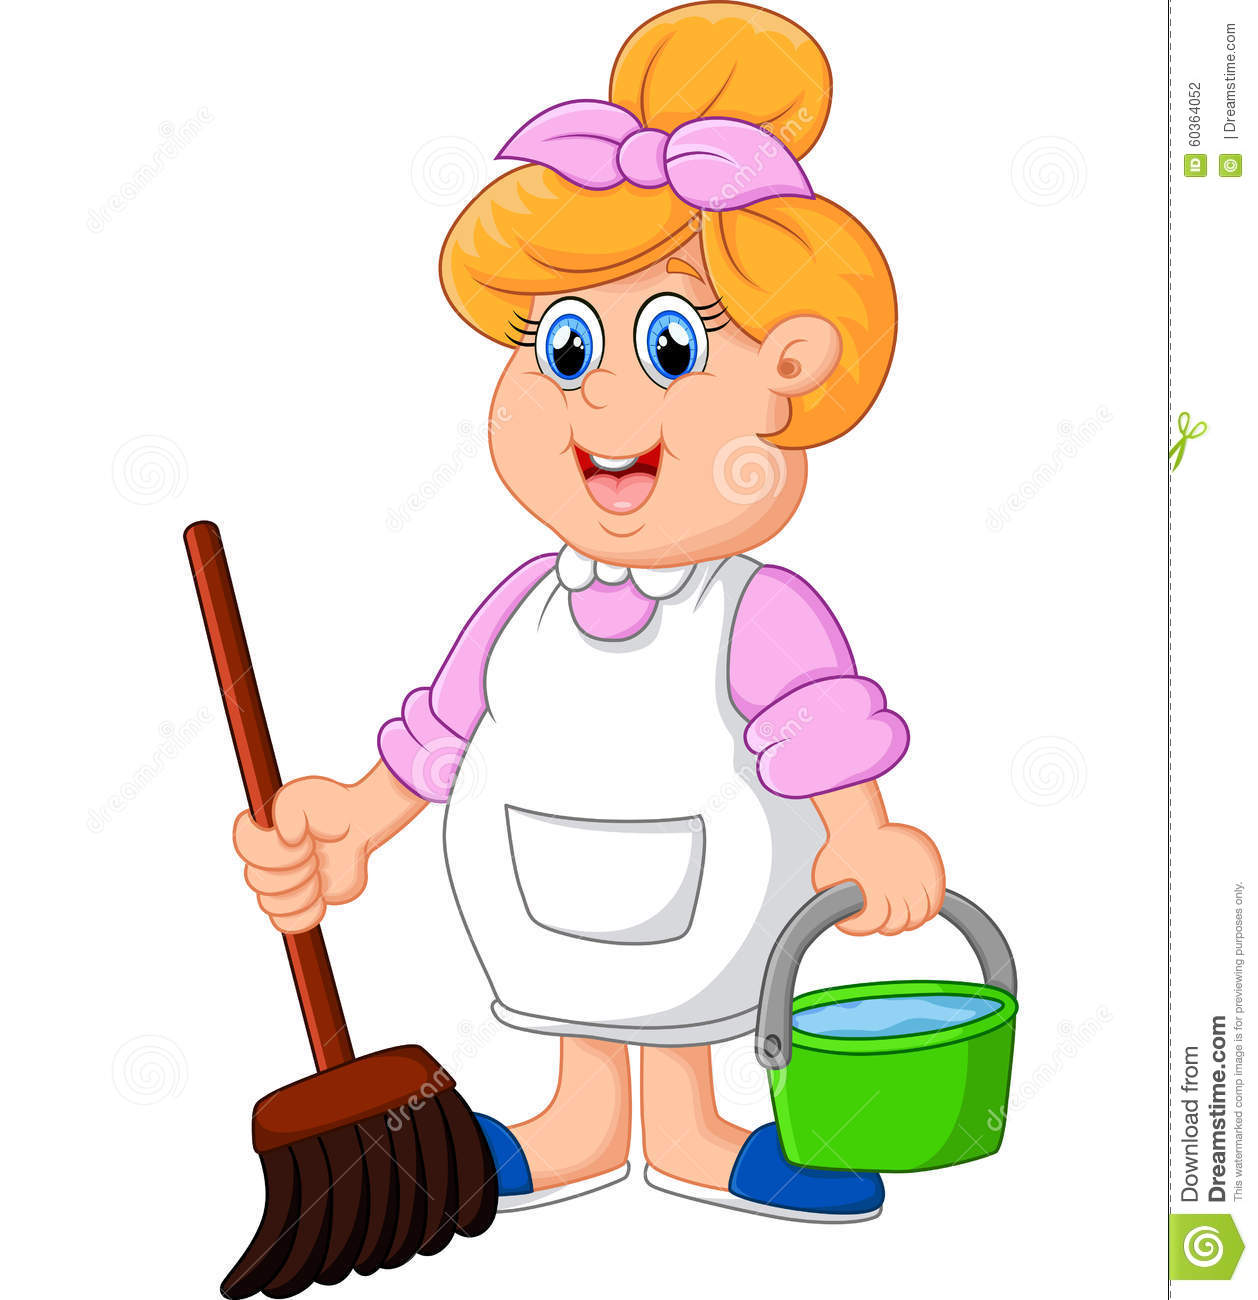 housewife cartoon illustration stock illustration image cleaning lady clip art free cleaning lady clip art sign